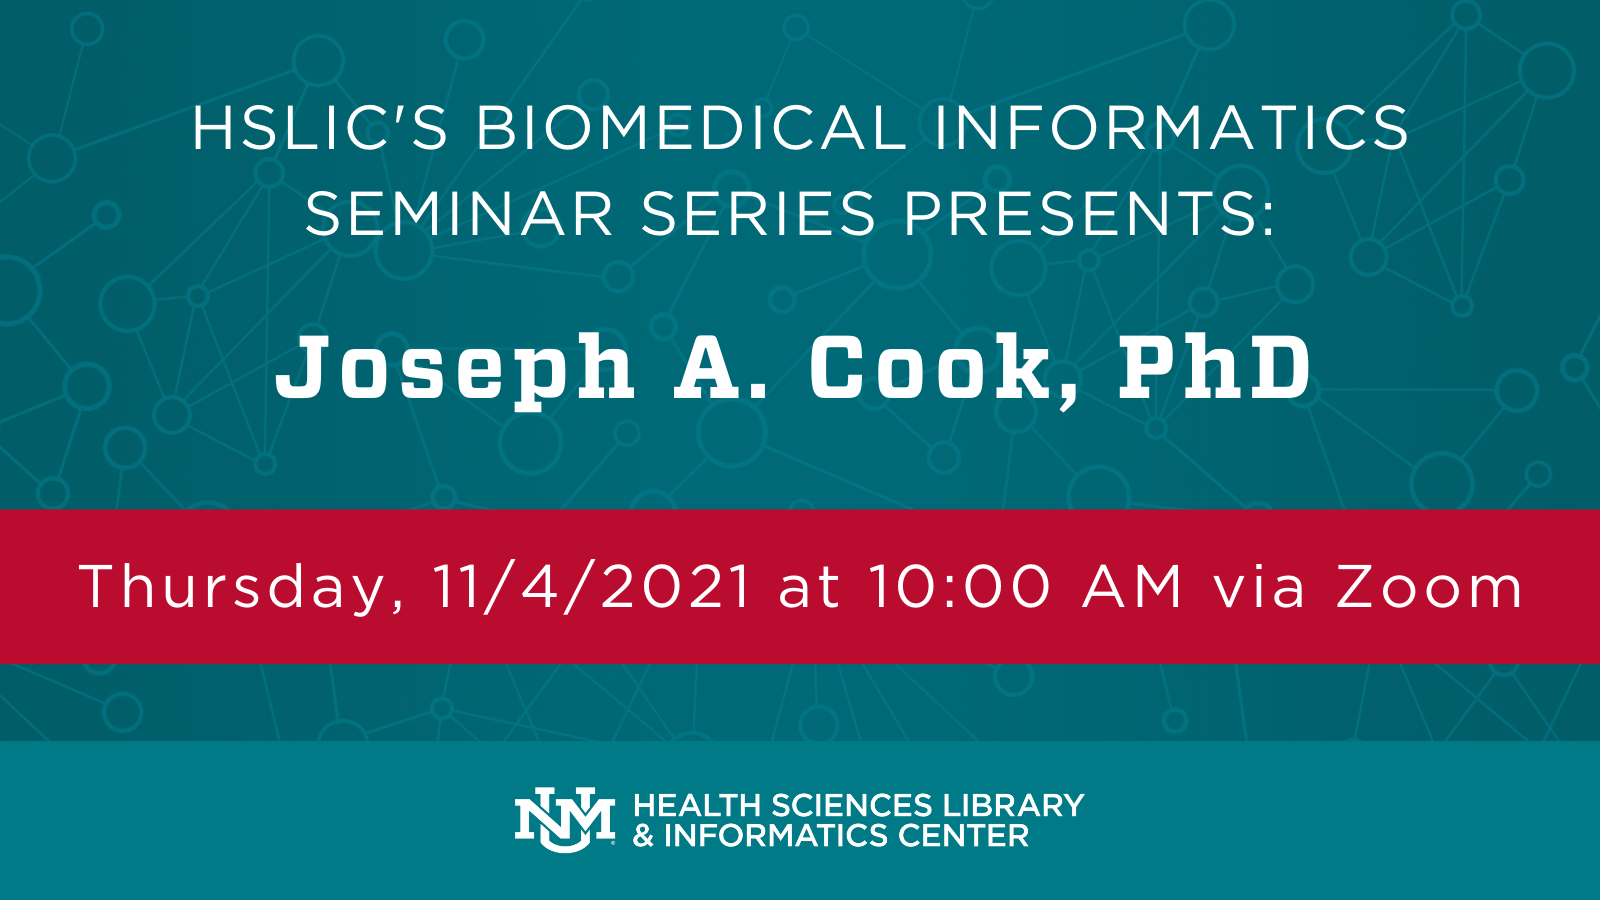 Image containing details of next Biomedical Informatics Seminar Series: Presenter – Joseph A. Cook, PhD; Scheduled for Thursday, 11/4/2021 at 10:00 AM via Zoom.